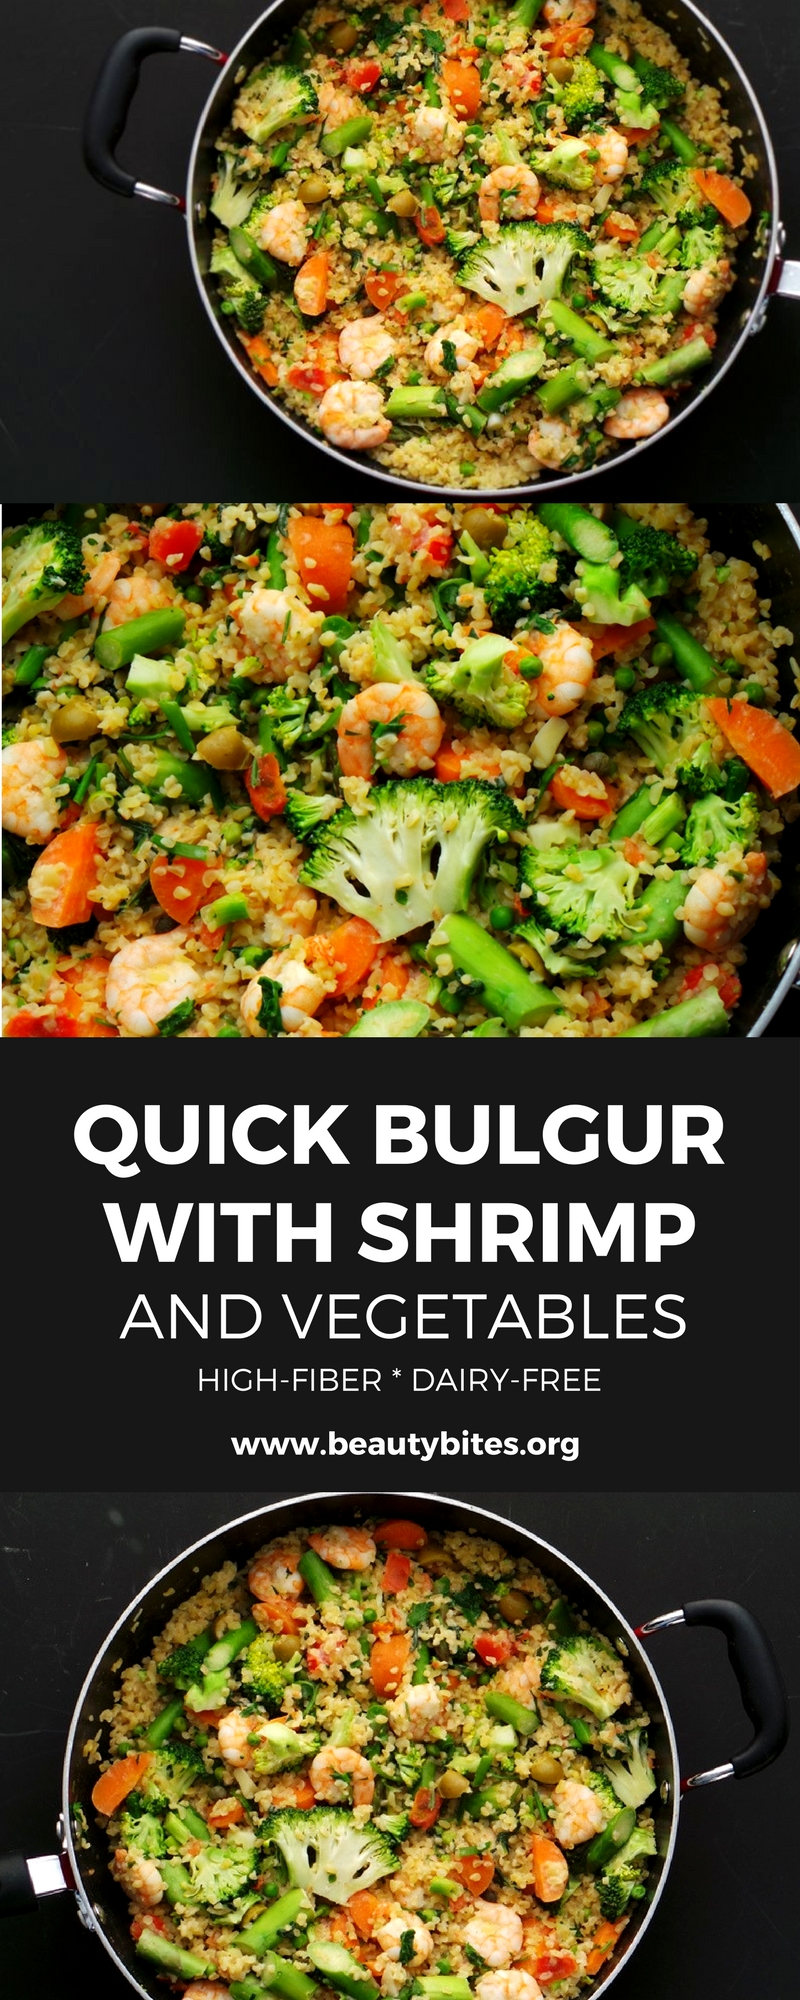 Shrimp, bulgur and vegetables - a delicious healthy dinner that takes around 20 minutes, is high-fiber, dairy-free and easy!